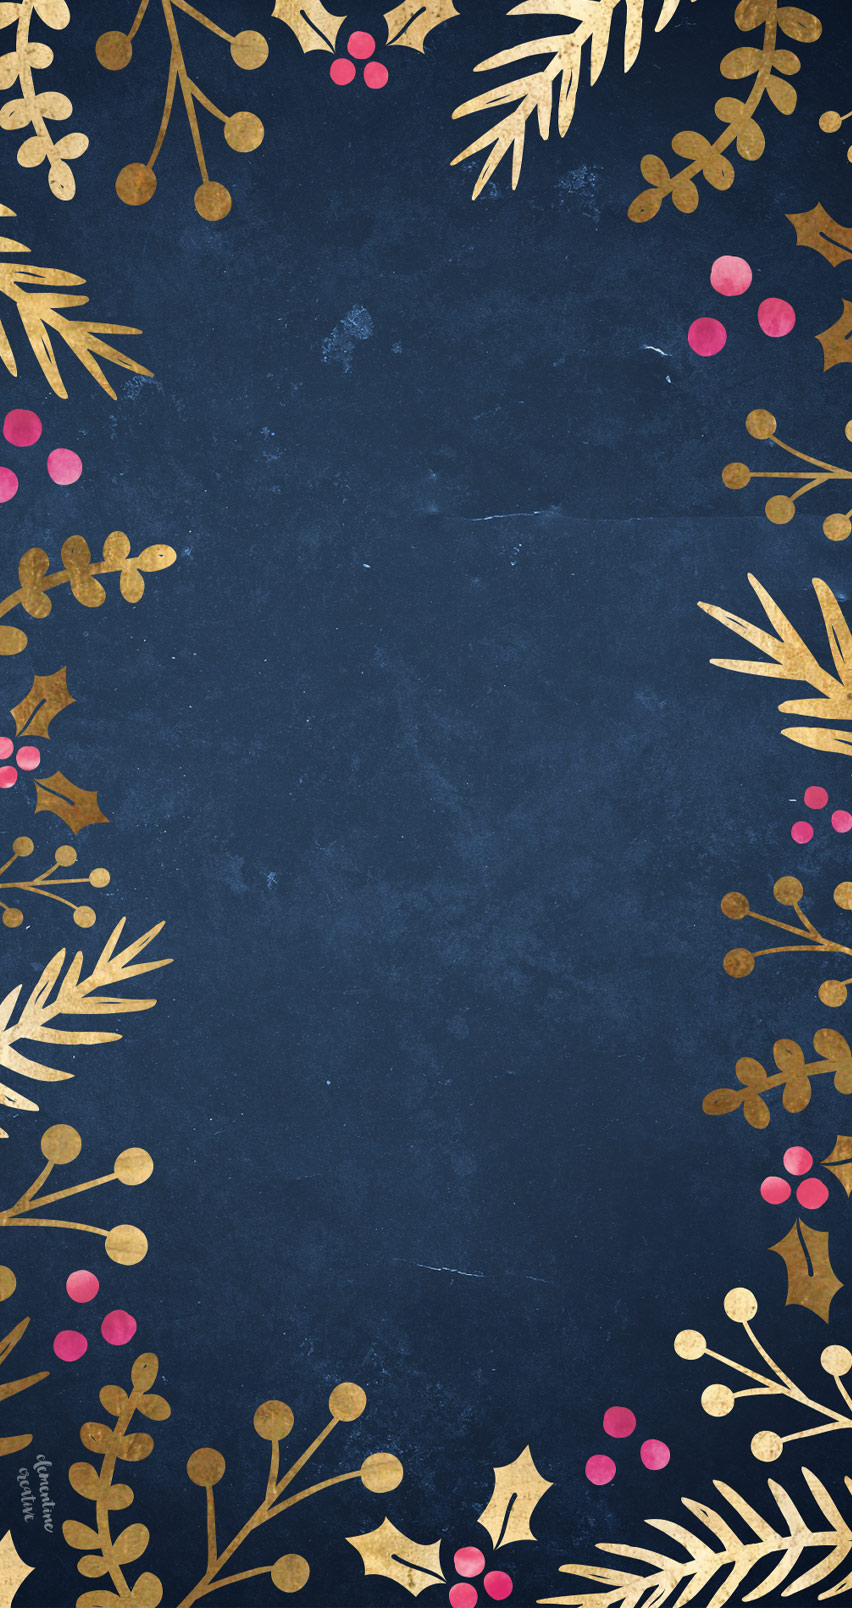 Free festive wallpaper gold foil foliage - Free winter wallpaper for phone ...